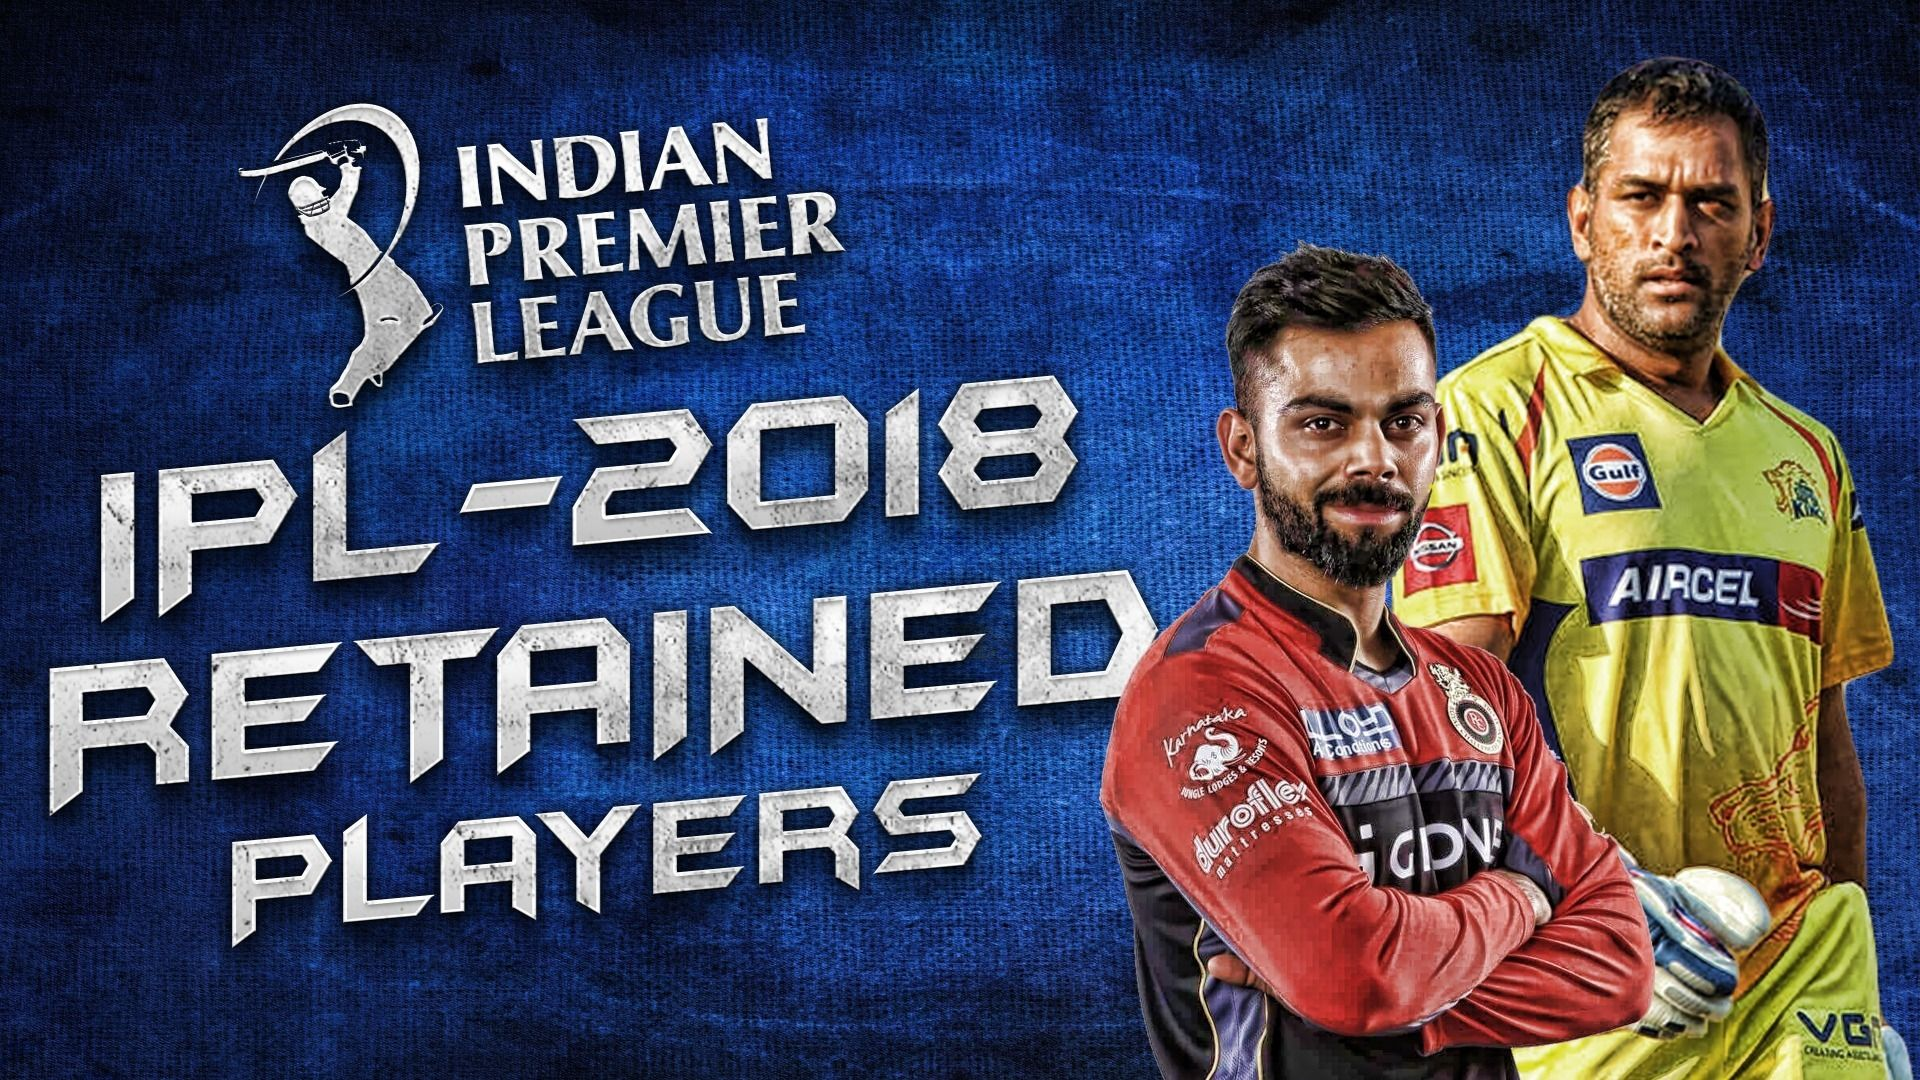 Indian Team 3d Wallpaper Ipl Wallpapers 2018